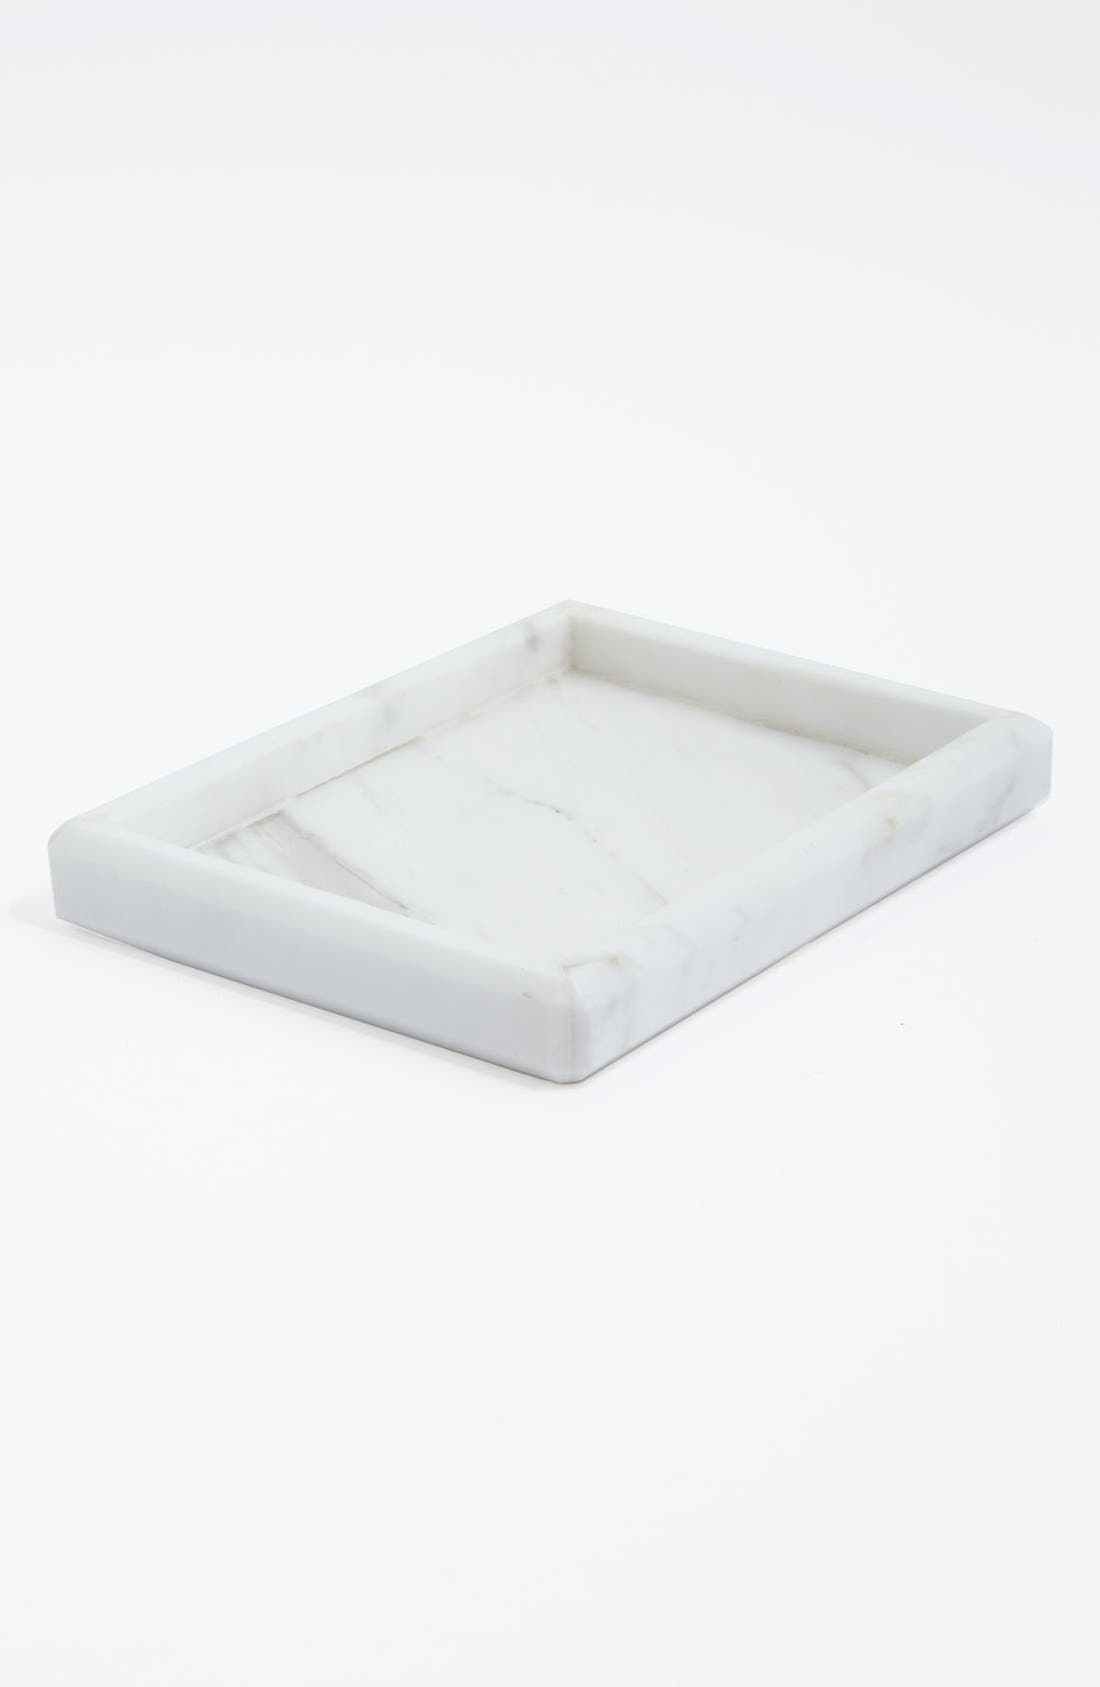 Waterworks Studio 'Luna' White Marble Soap Dish (Online Only)